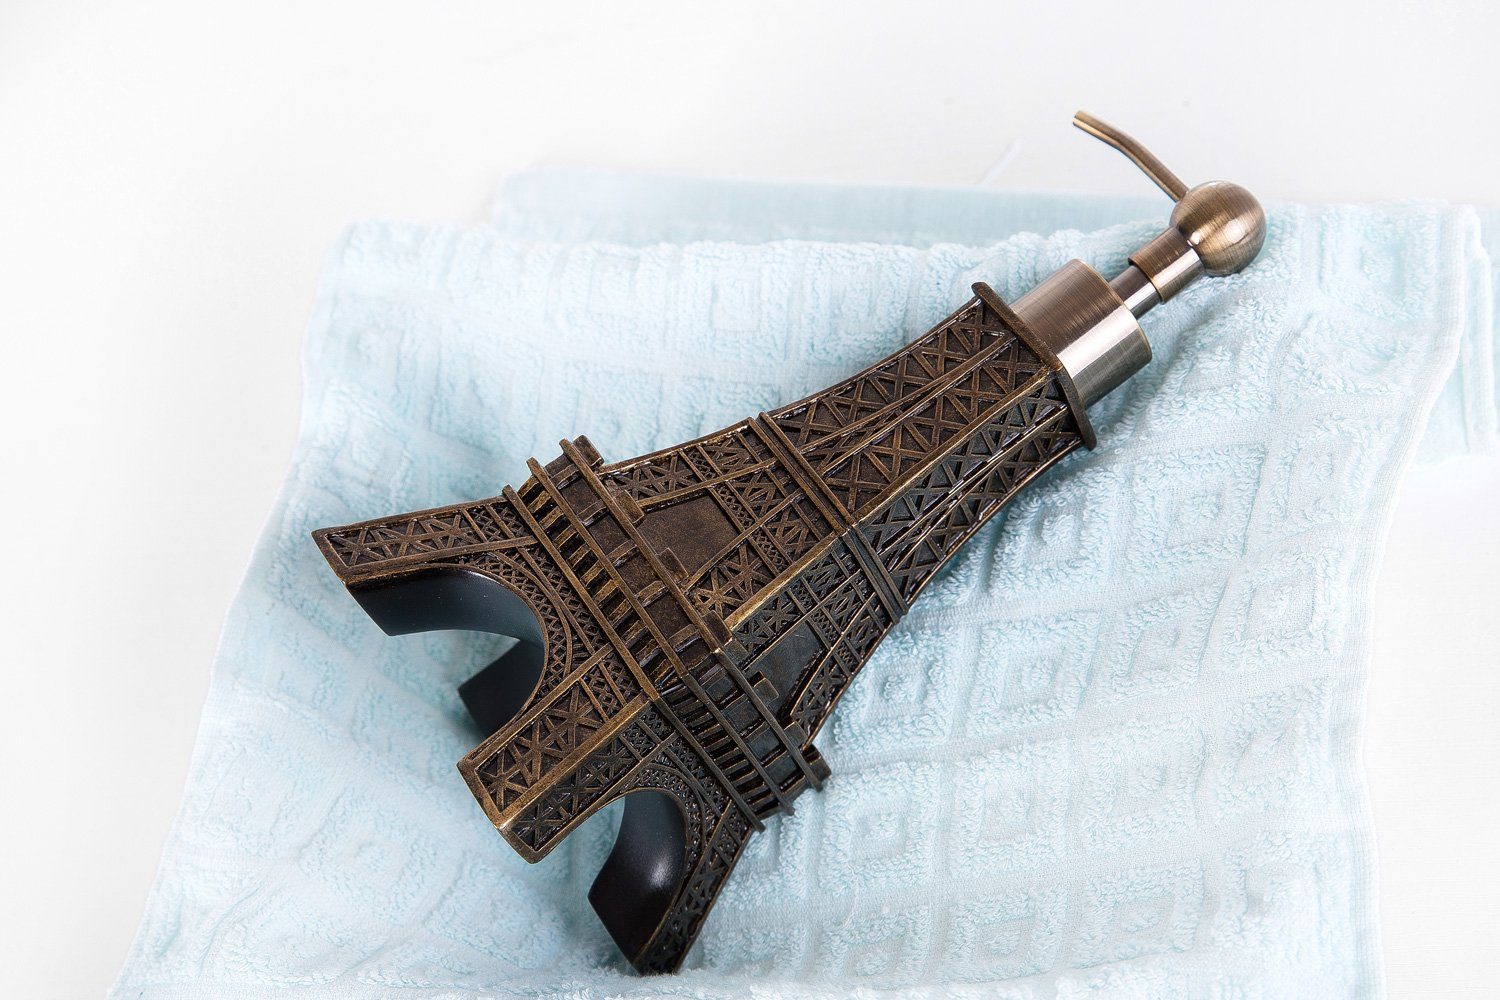 SILOKO 3D Eiffel Tower Metal Pump Soap Dispenser for Kitchen or Bathroom Bronze by SILOKO (Image #2)